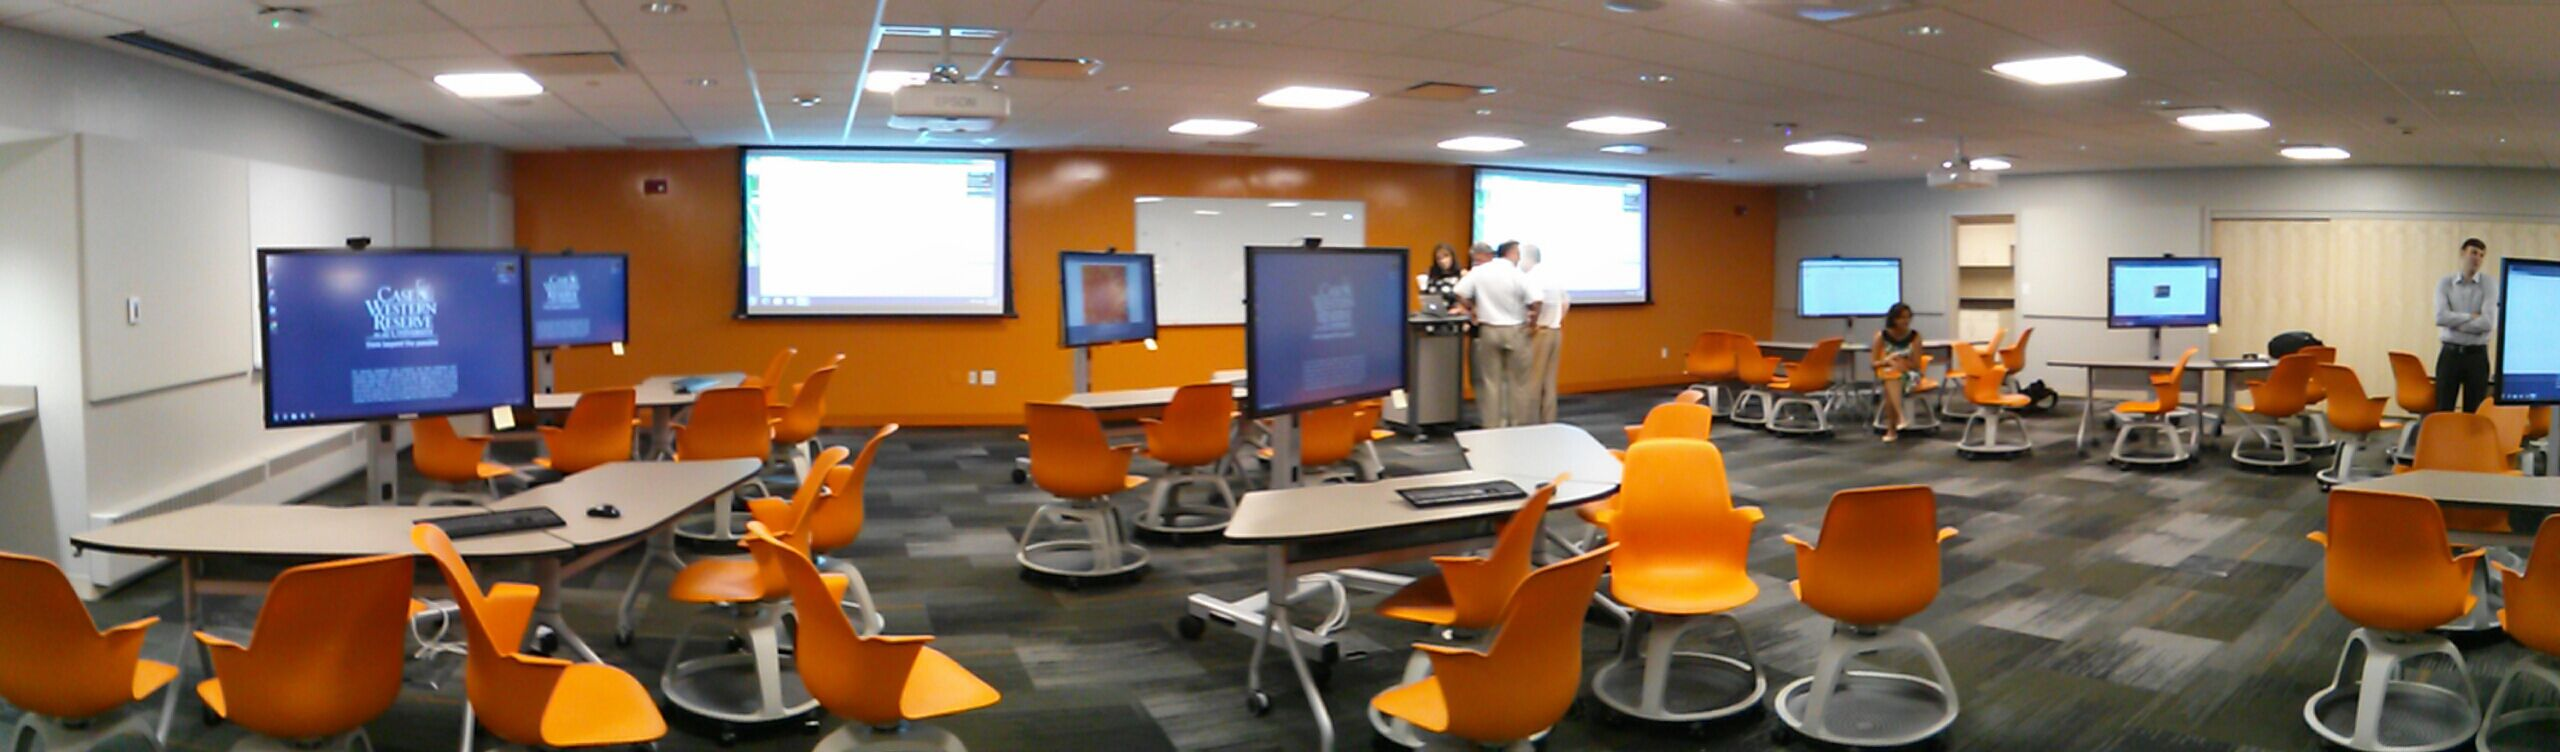 Classroom Design Of The Future ~ Classroom of the future g  pixels center